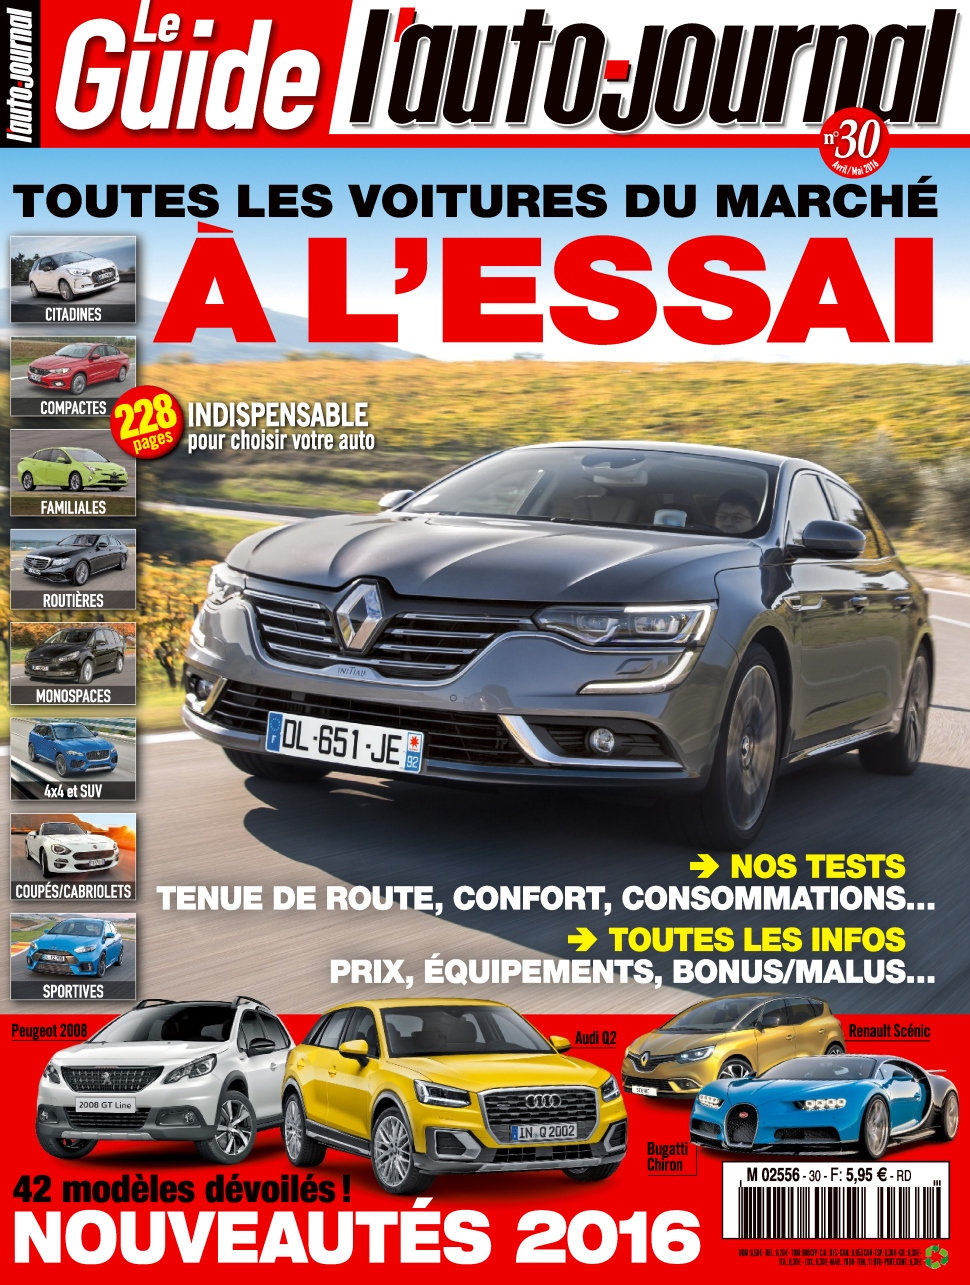 L'Auto-Journal (Le Guide) N°3 - Avril/Mai 2016